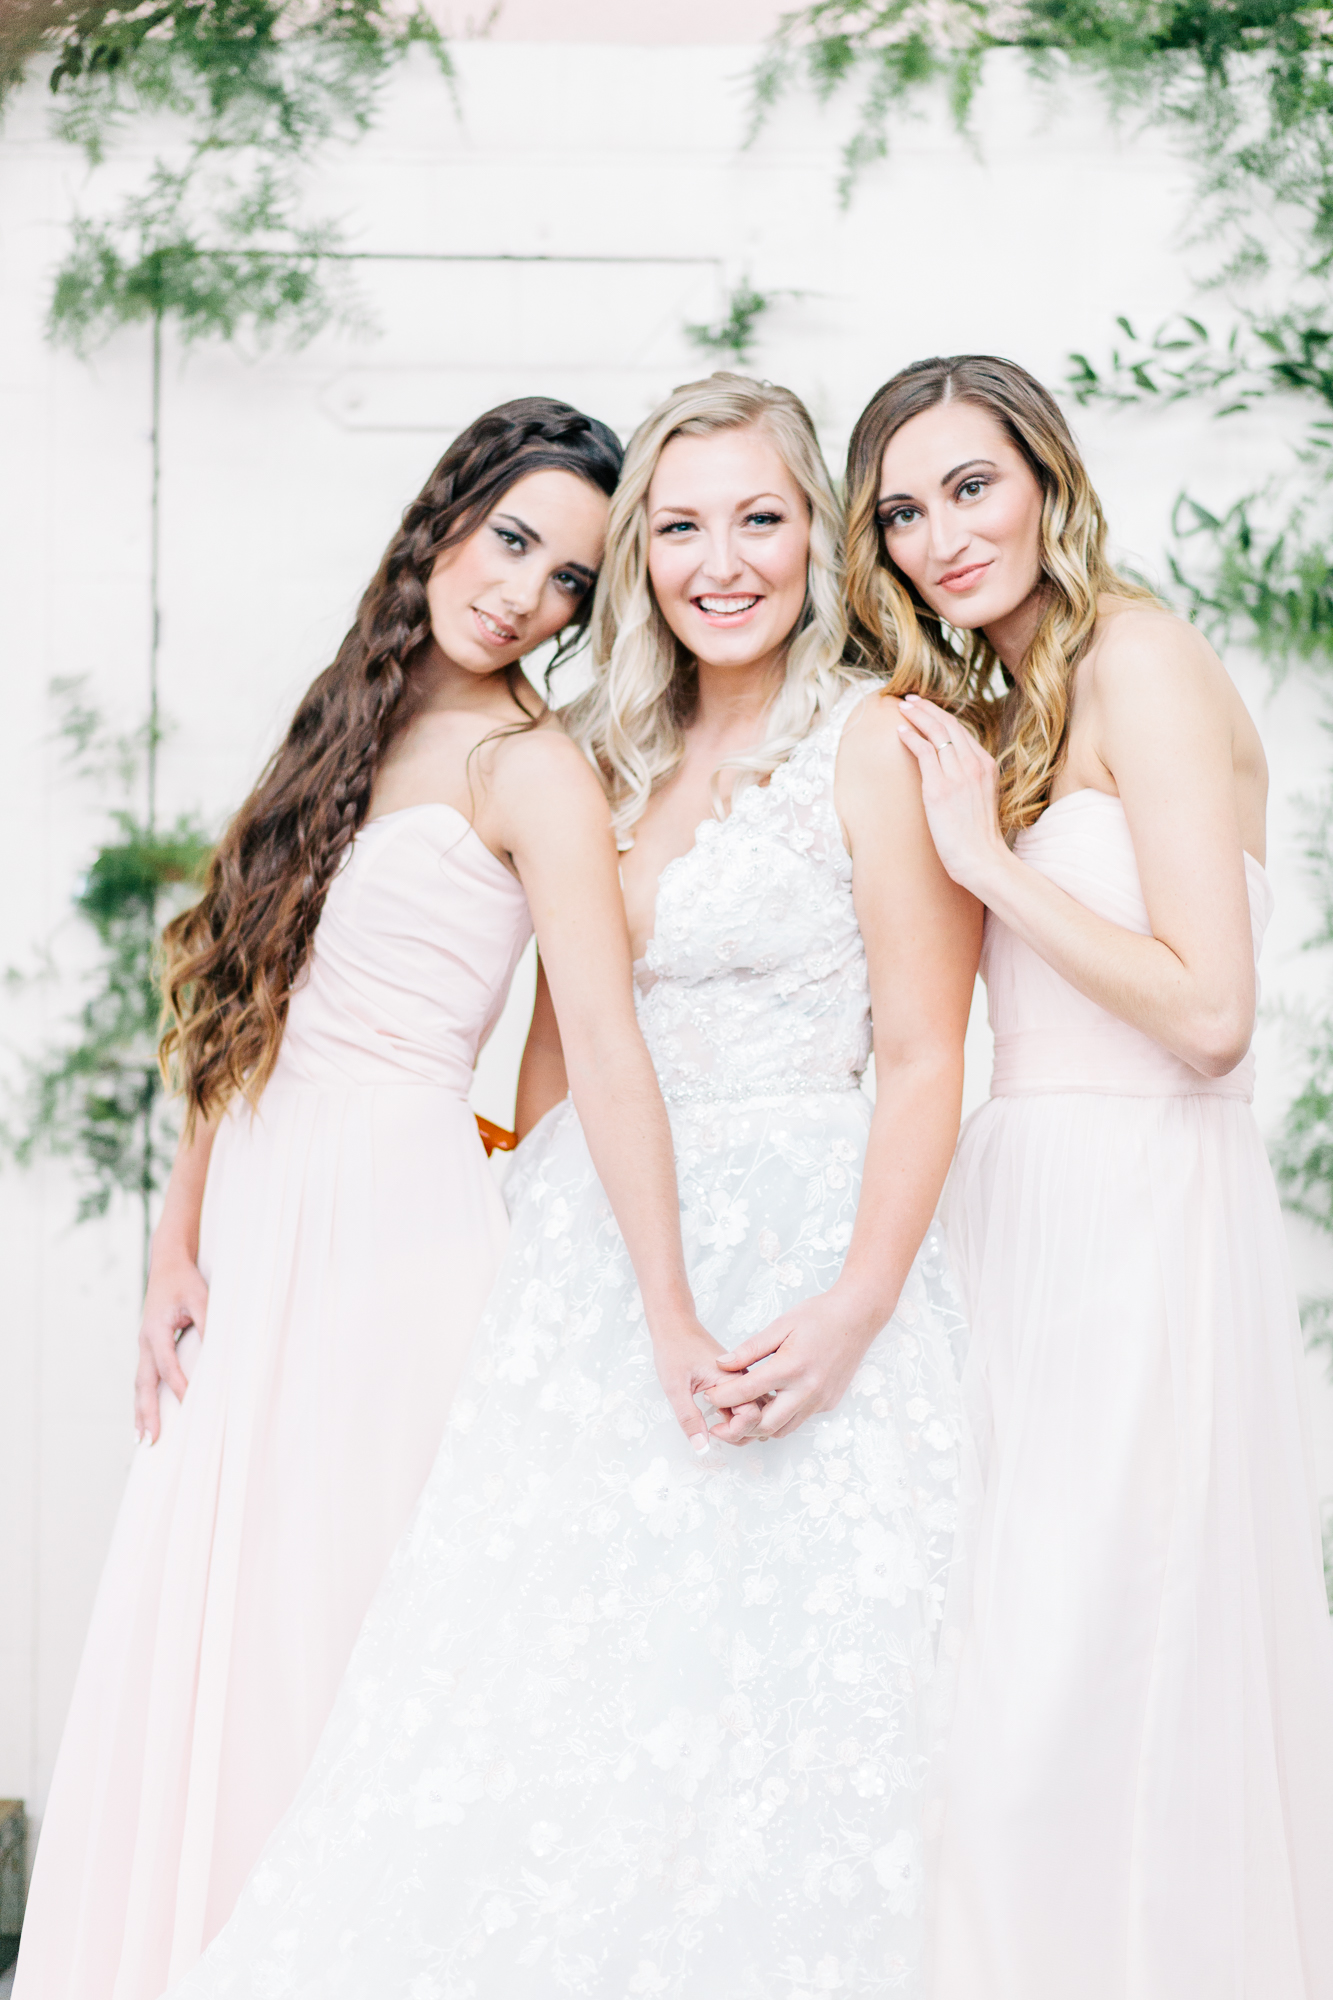 eisleyimages-thebostonbride-wedding-blush